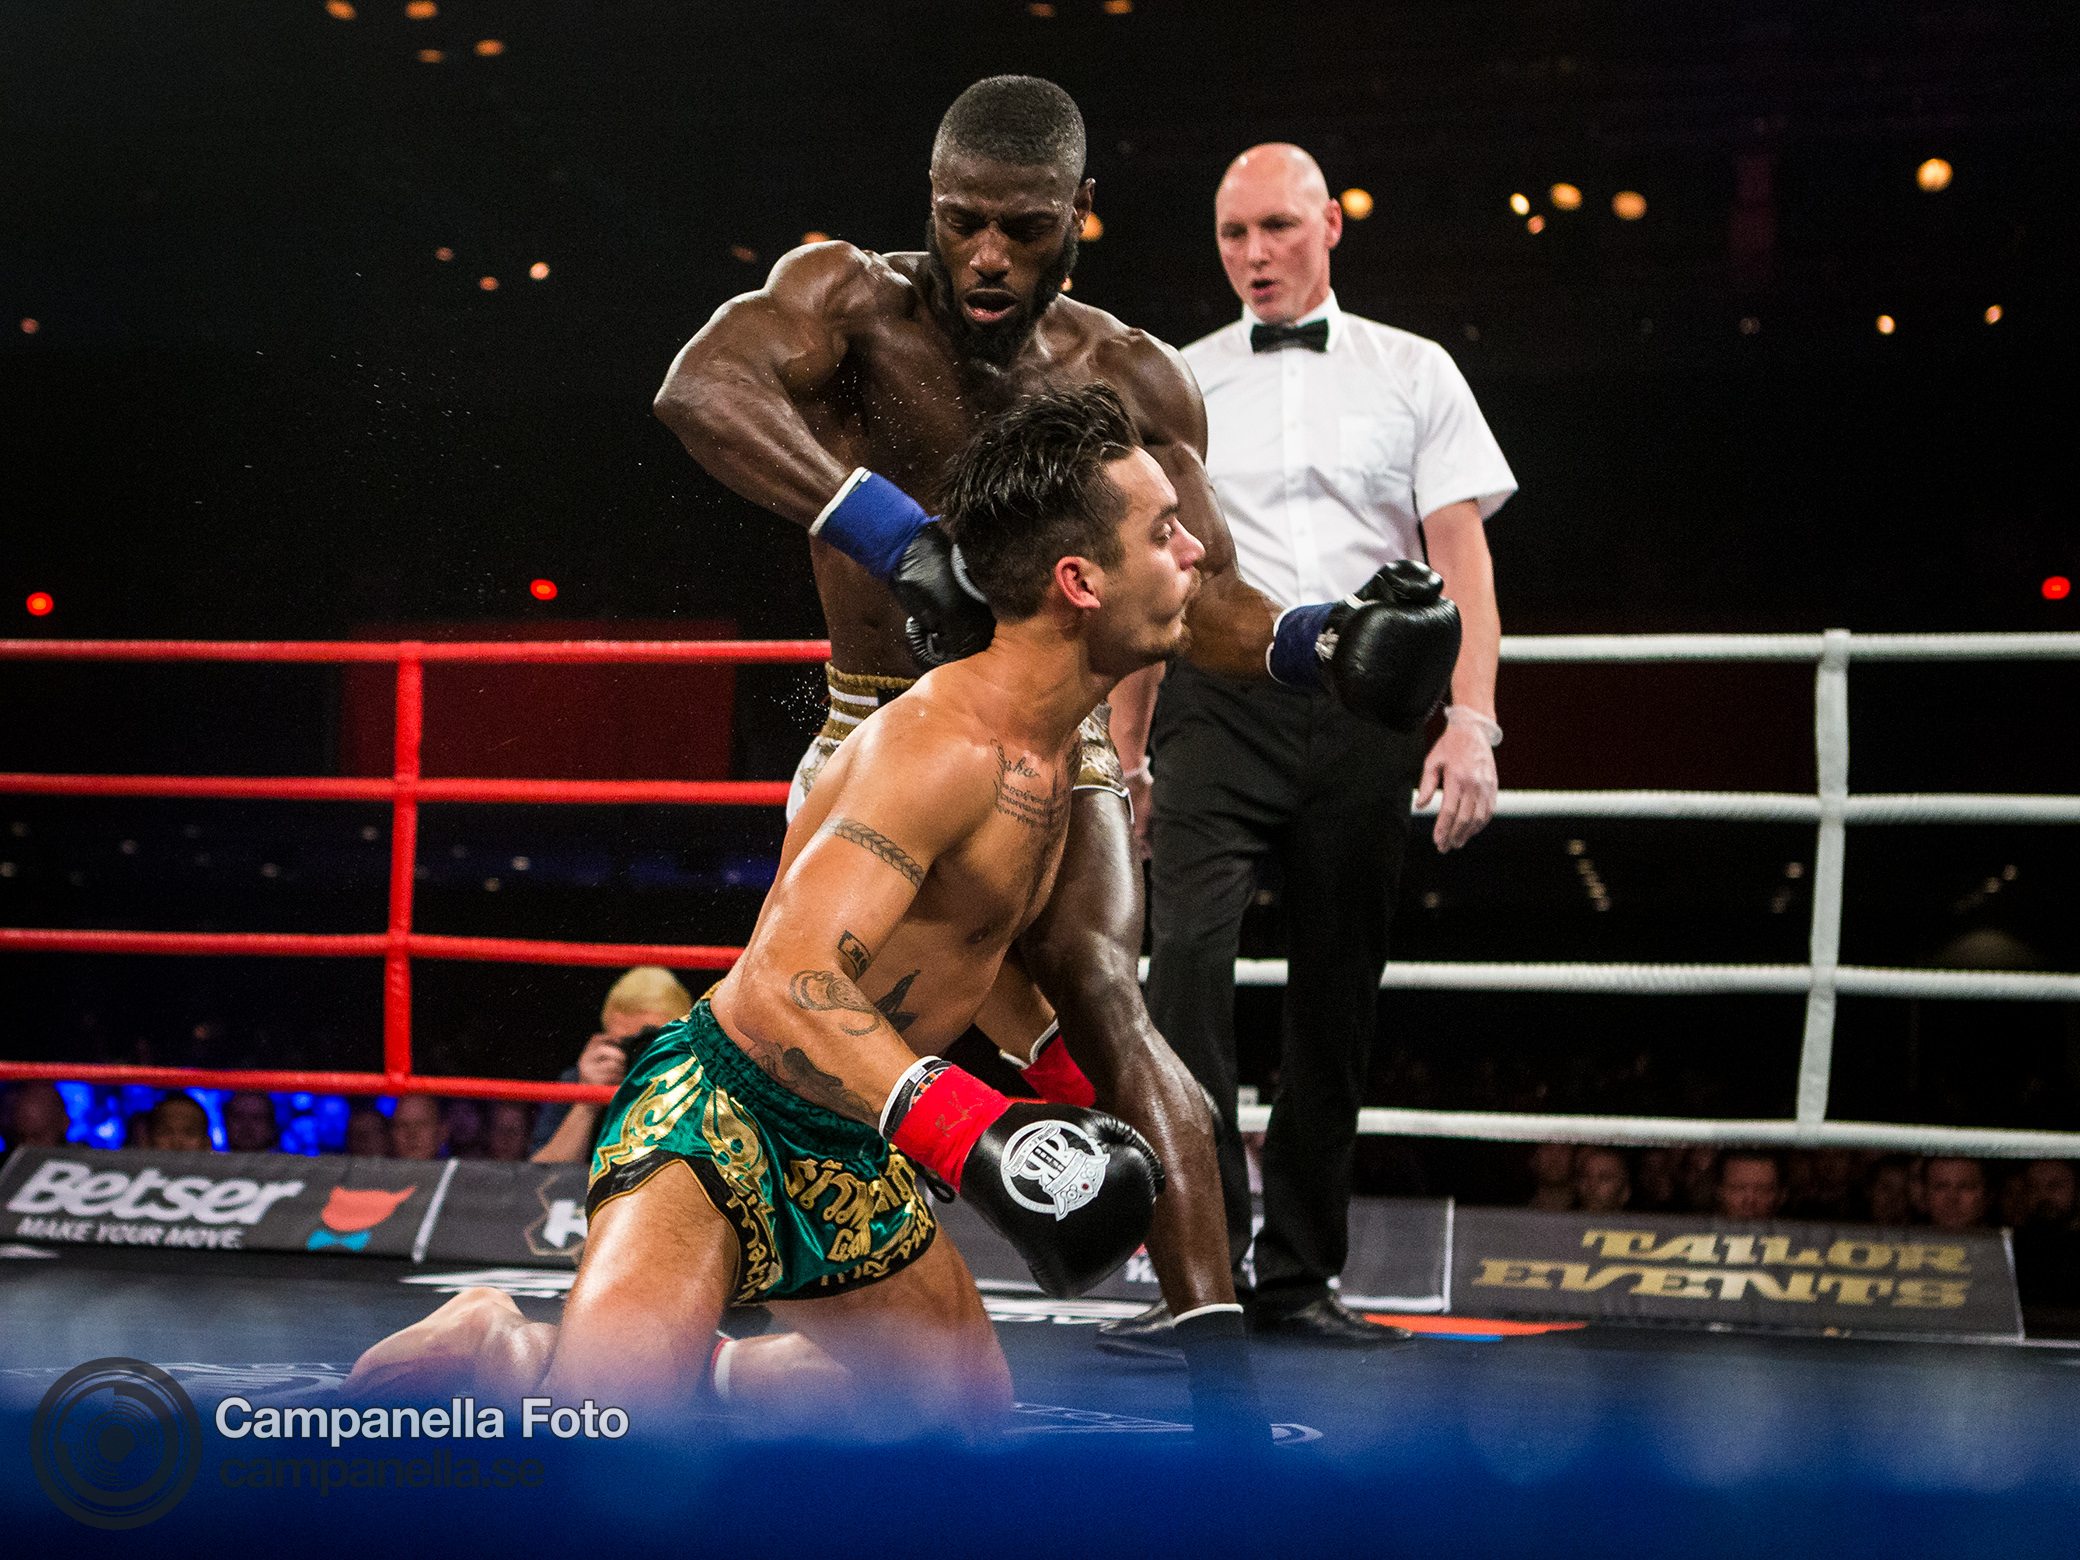 3 frames from the Rumble of the Kings - Michael Campanella Photography